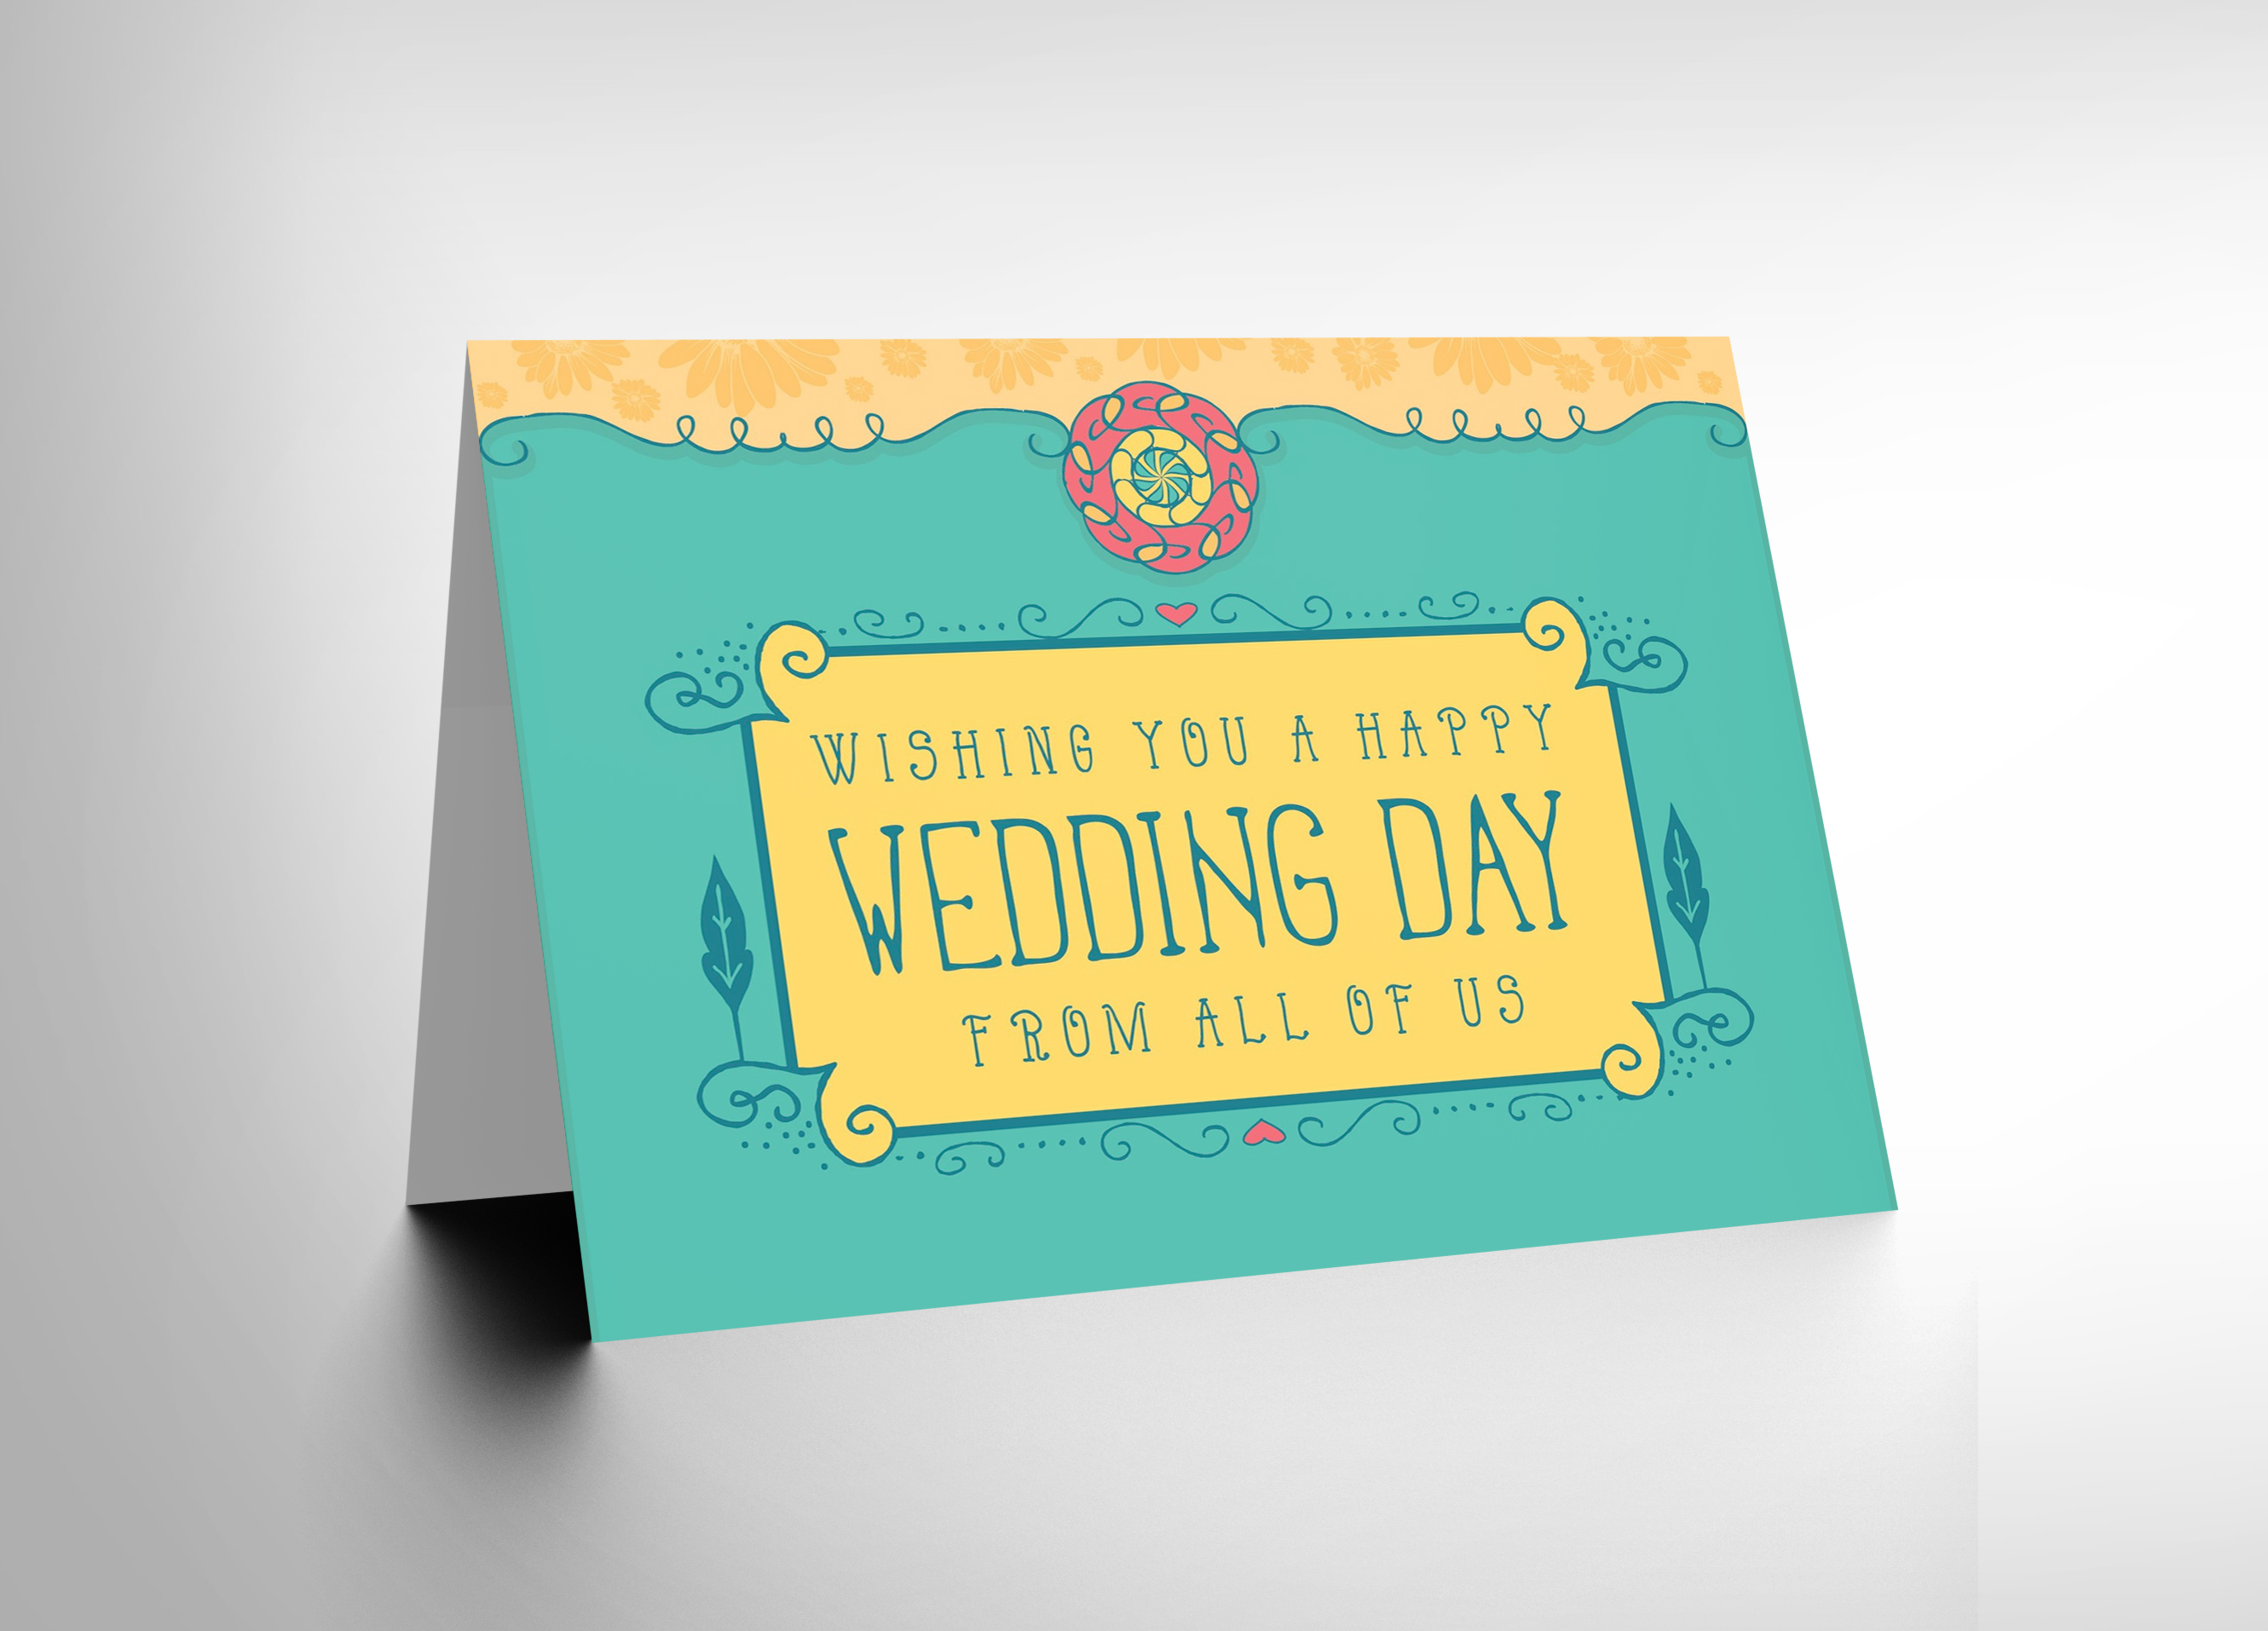 ... Garden > Greeting Cards & Party Supply > Greeting Cards & I...